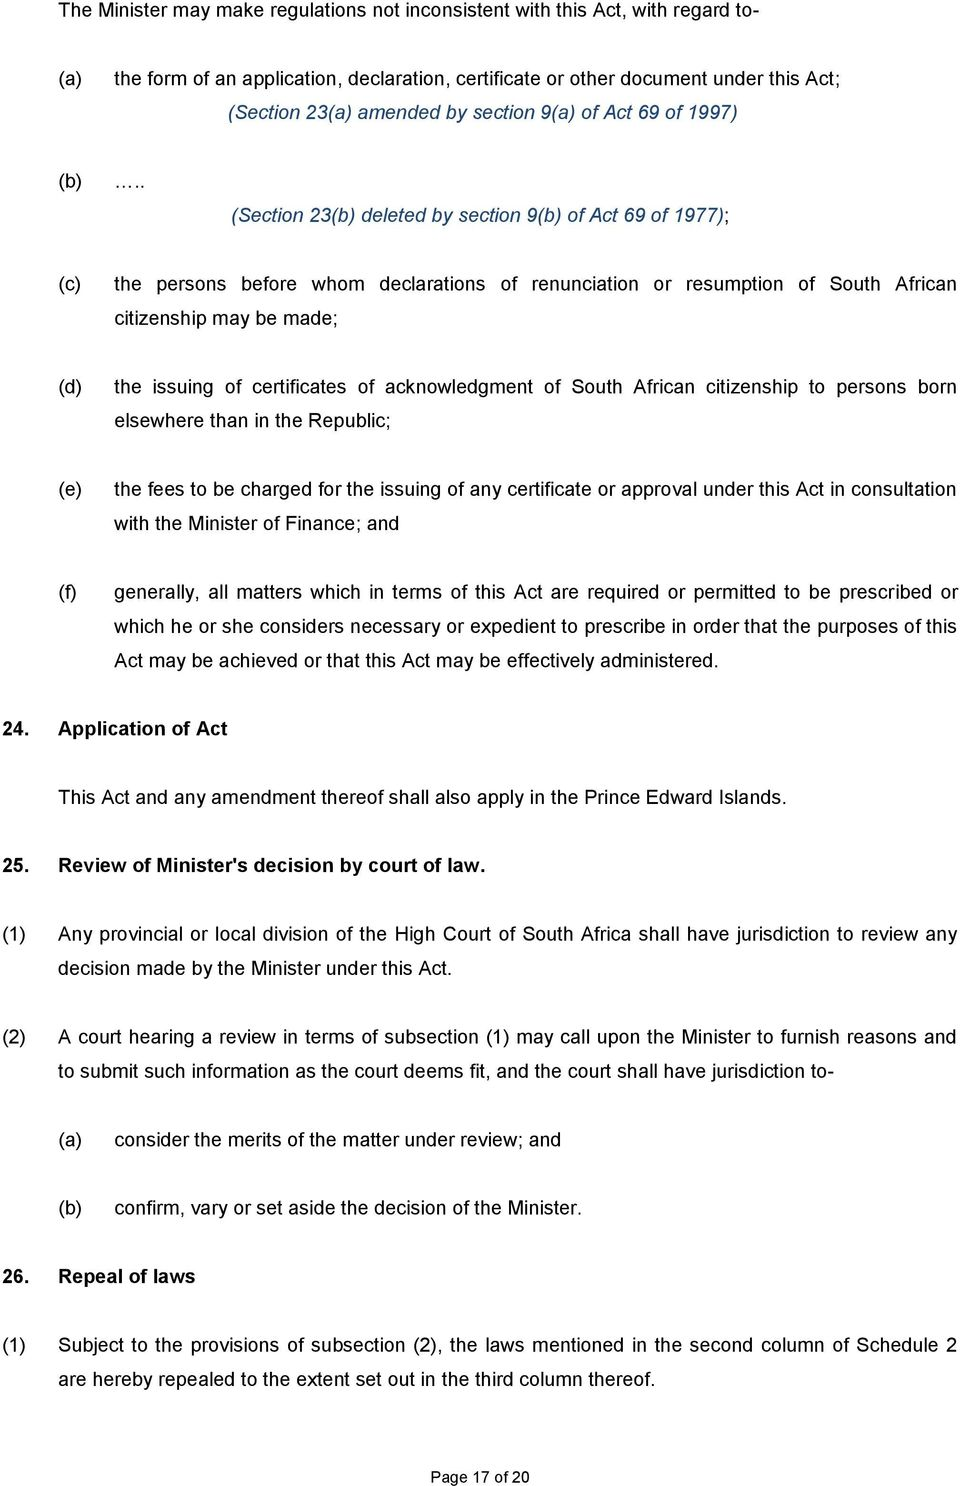 . (Section 23 deleted by section 9 of Act 69 of 1977); (c) the persons before whom declarations of renunciation or resumption of South African citizenship may be made; (d) the issuing of certificates